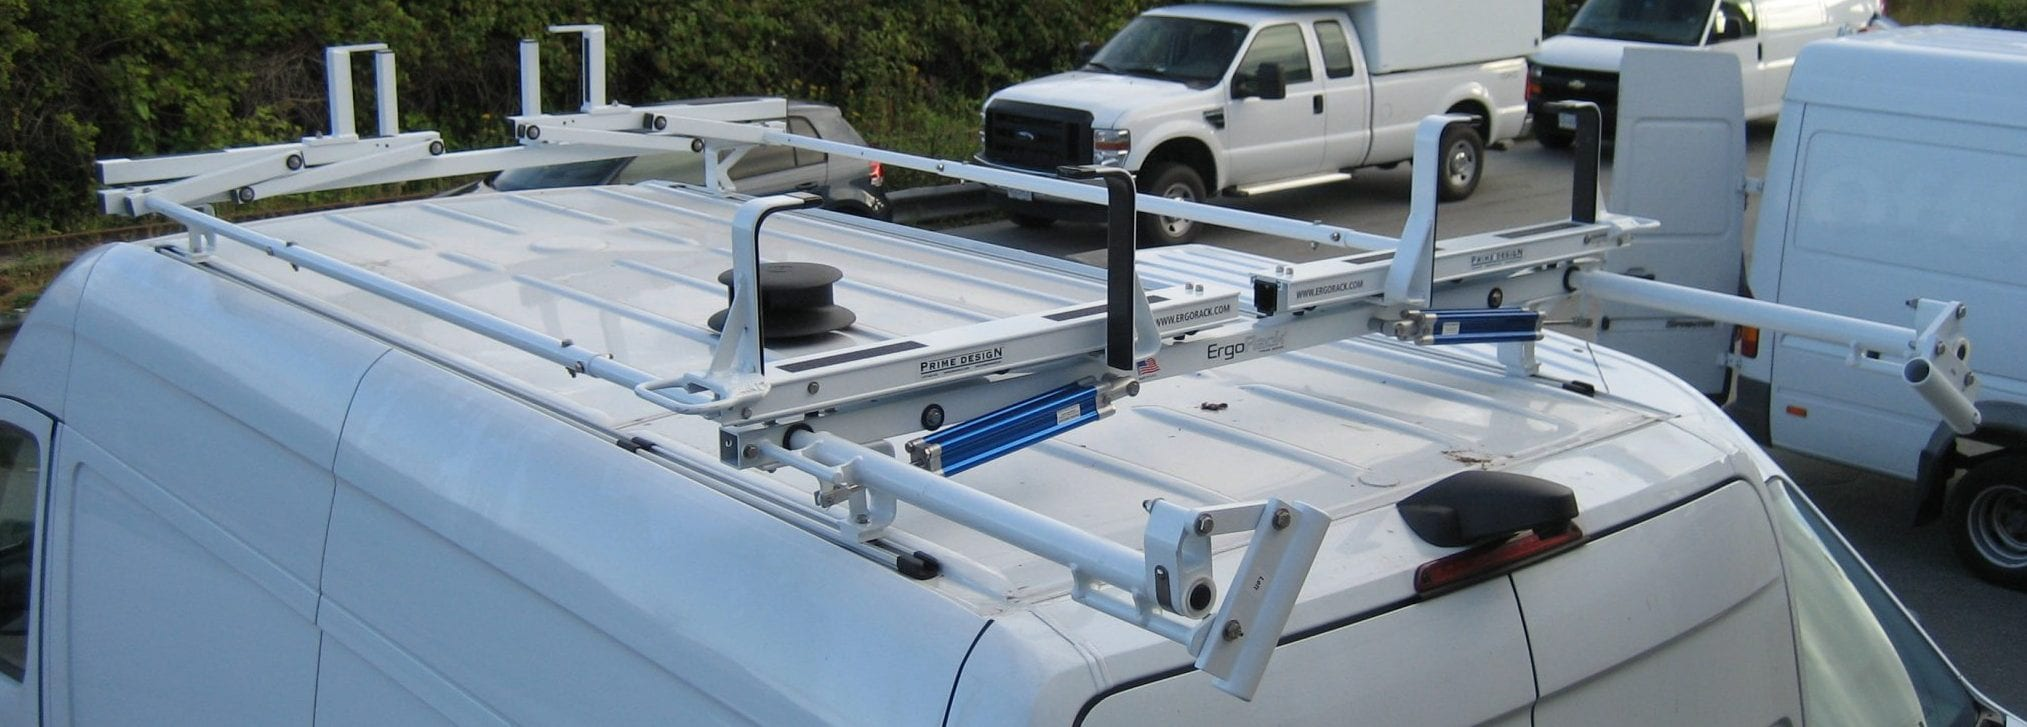 Sterling Fleet Outfitter's Prime Design ladder rack